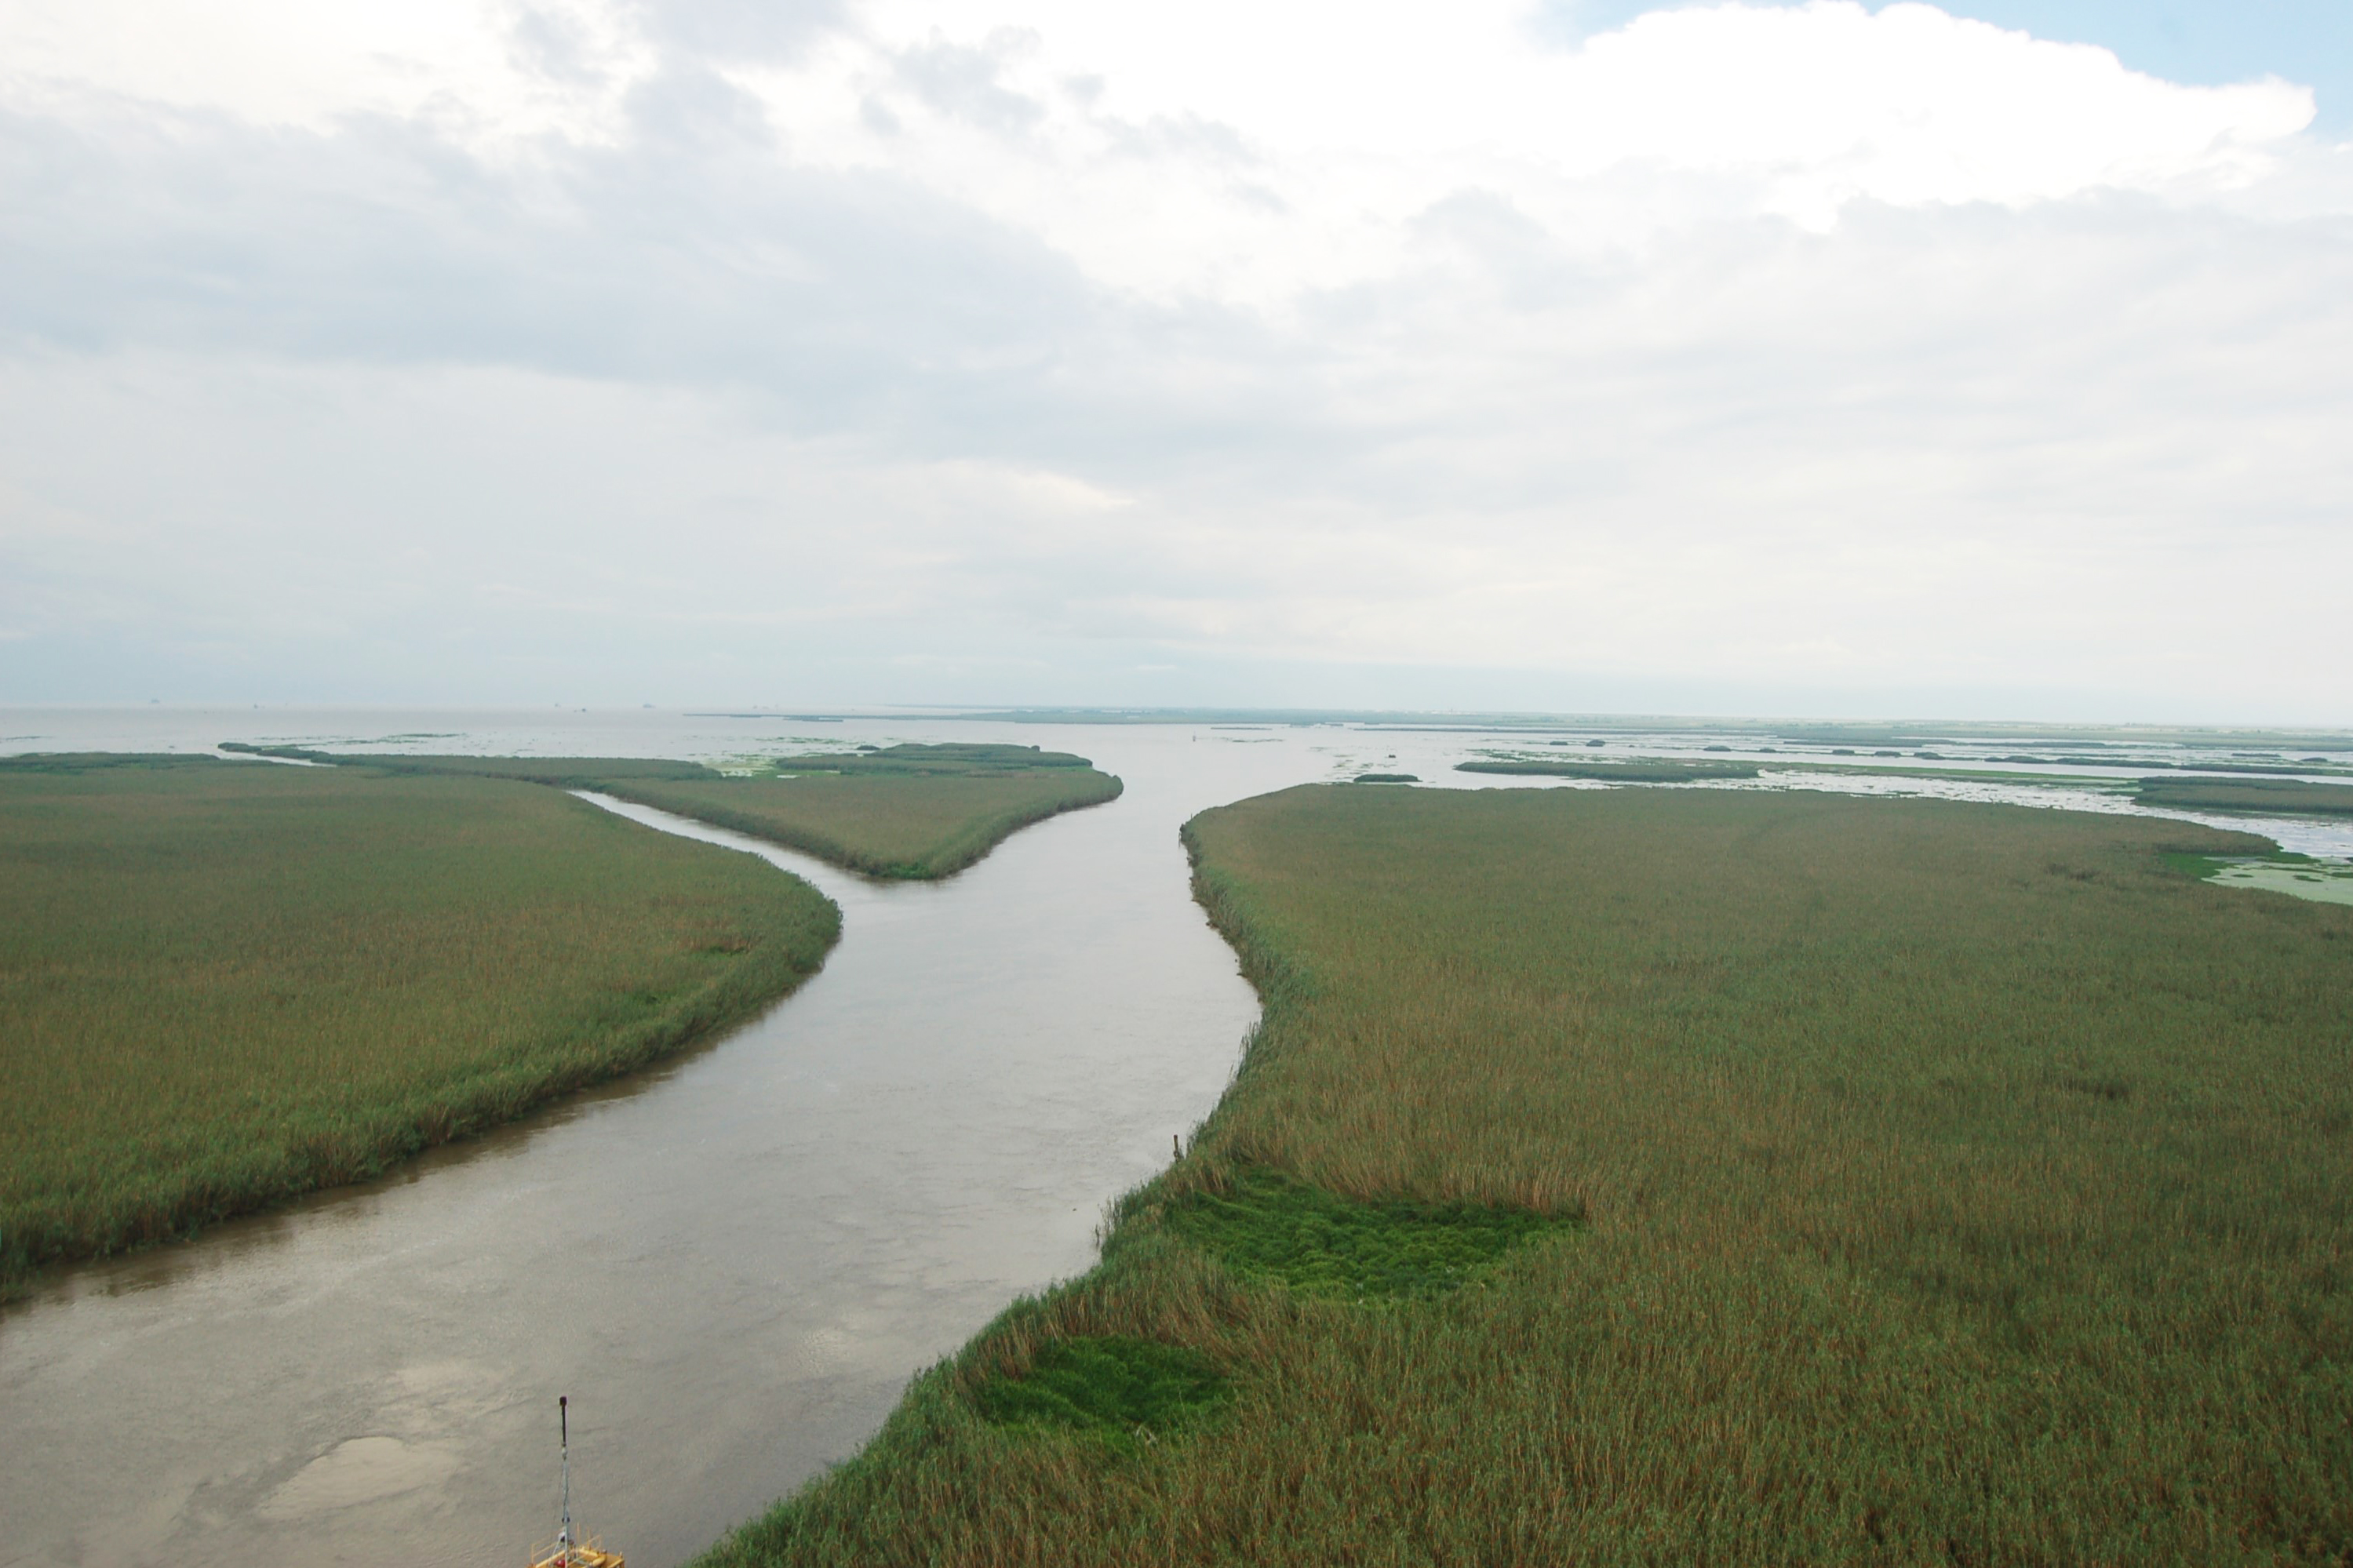 Marsh and river channels in the Mississippi River Delta